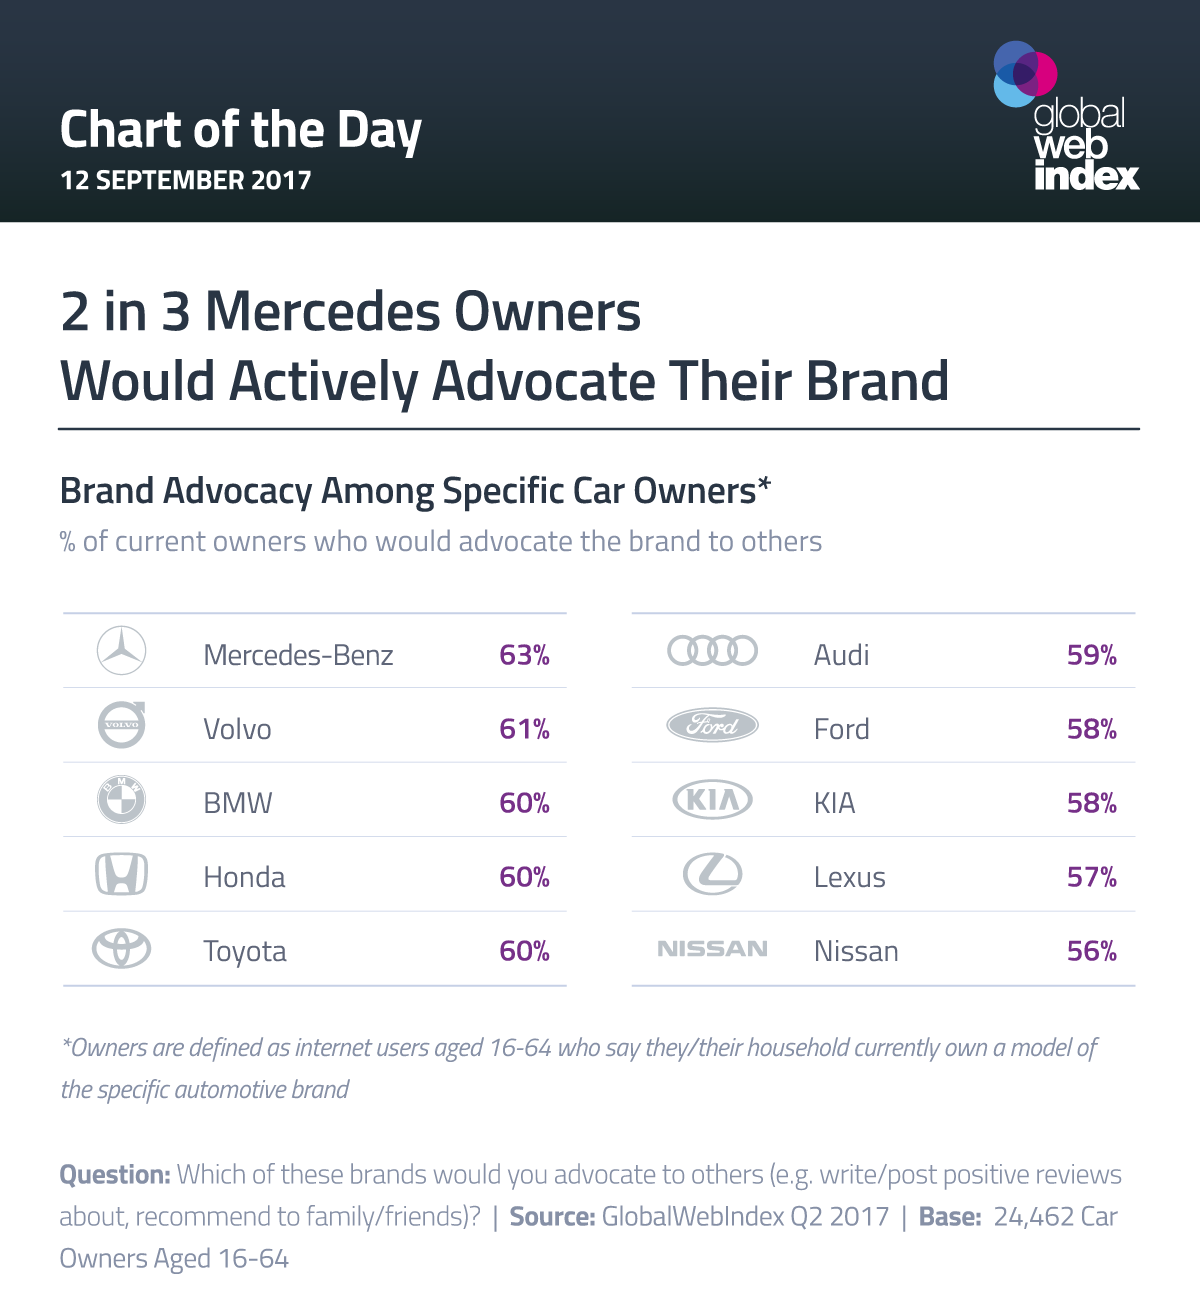 2 in 3 Mercedes Owners Would Actively Advocate Their Brand